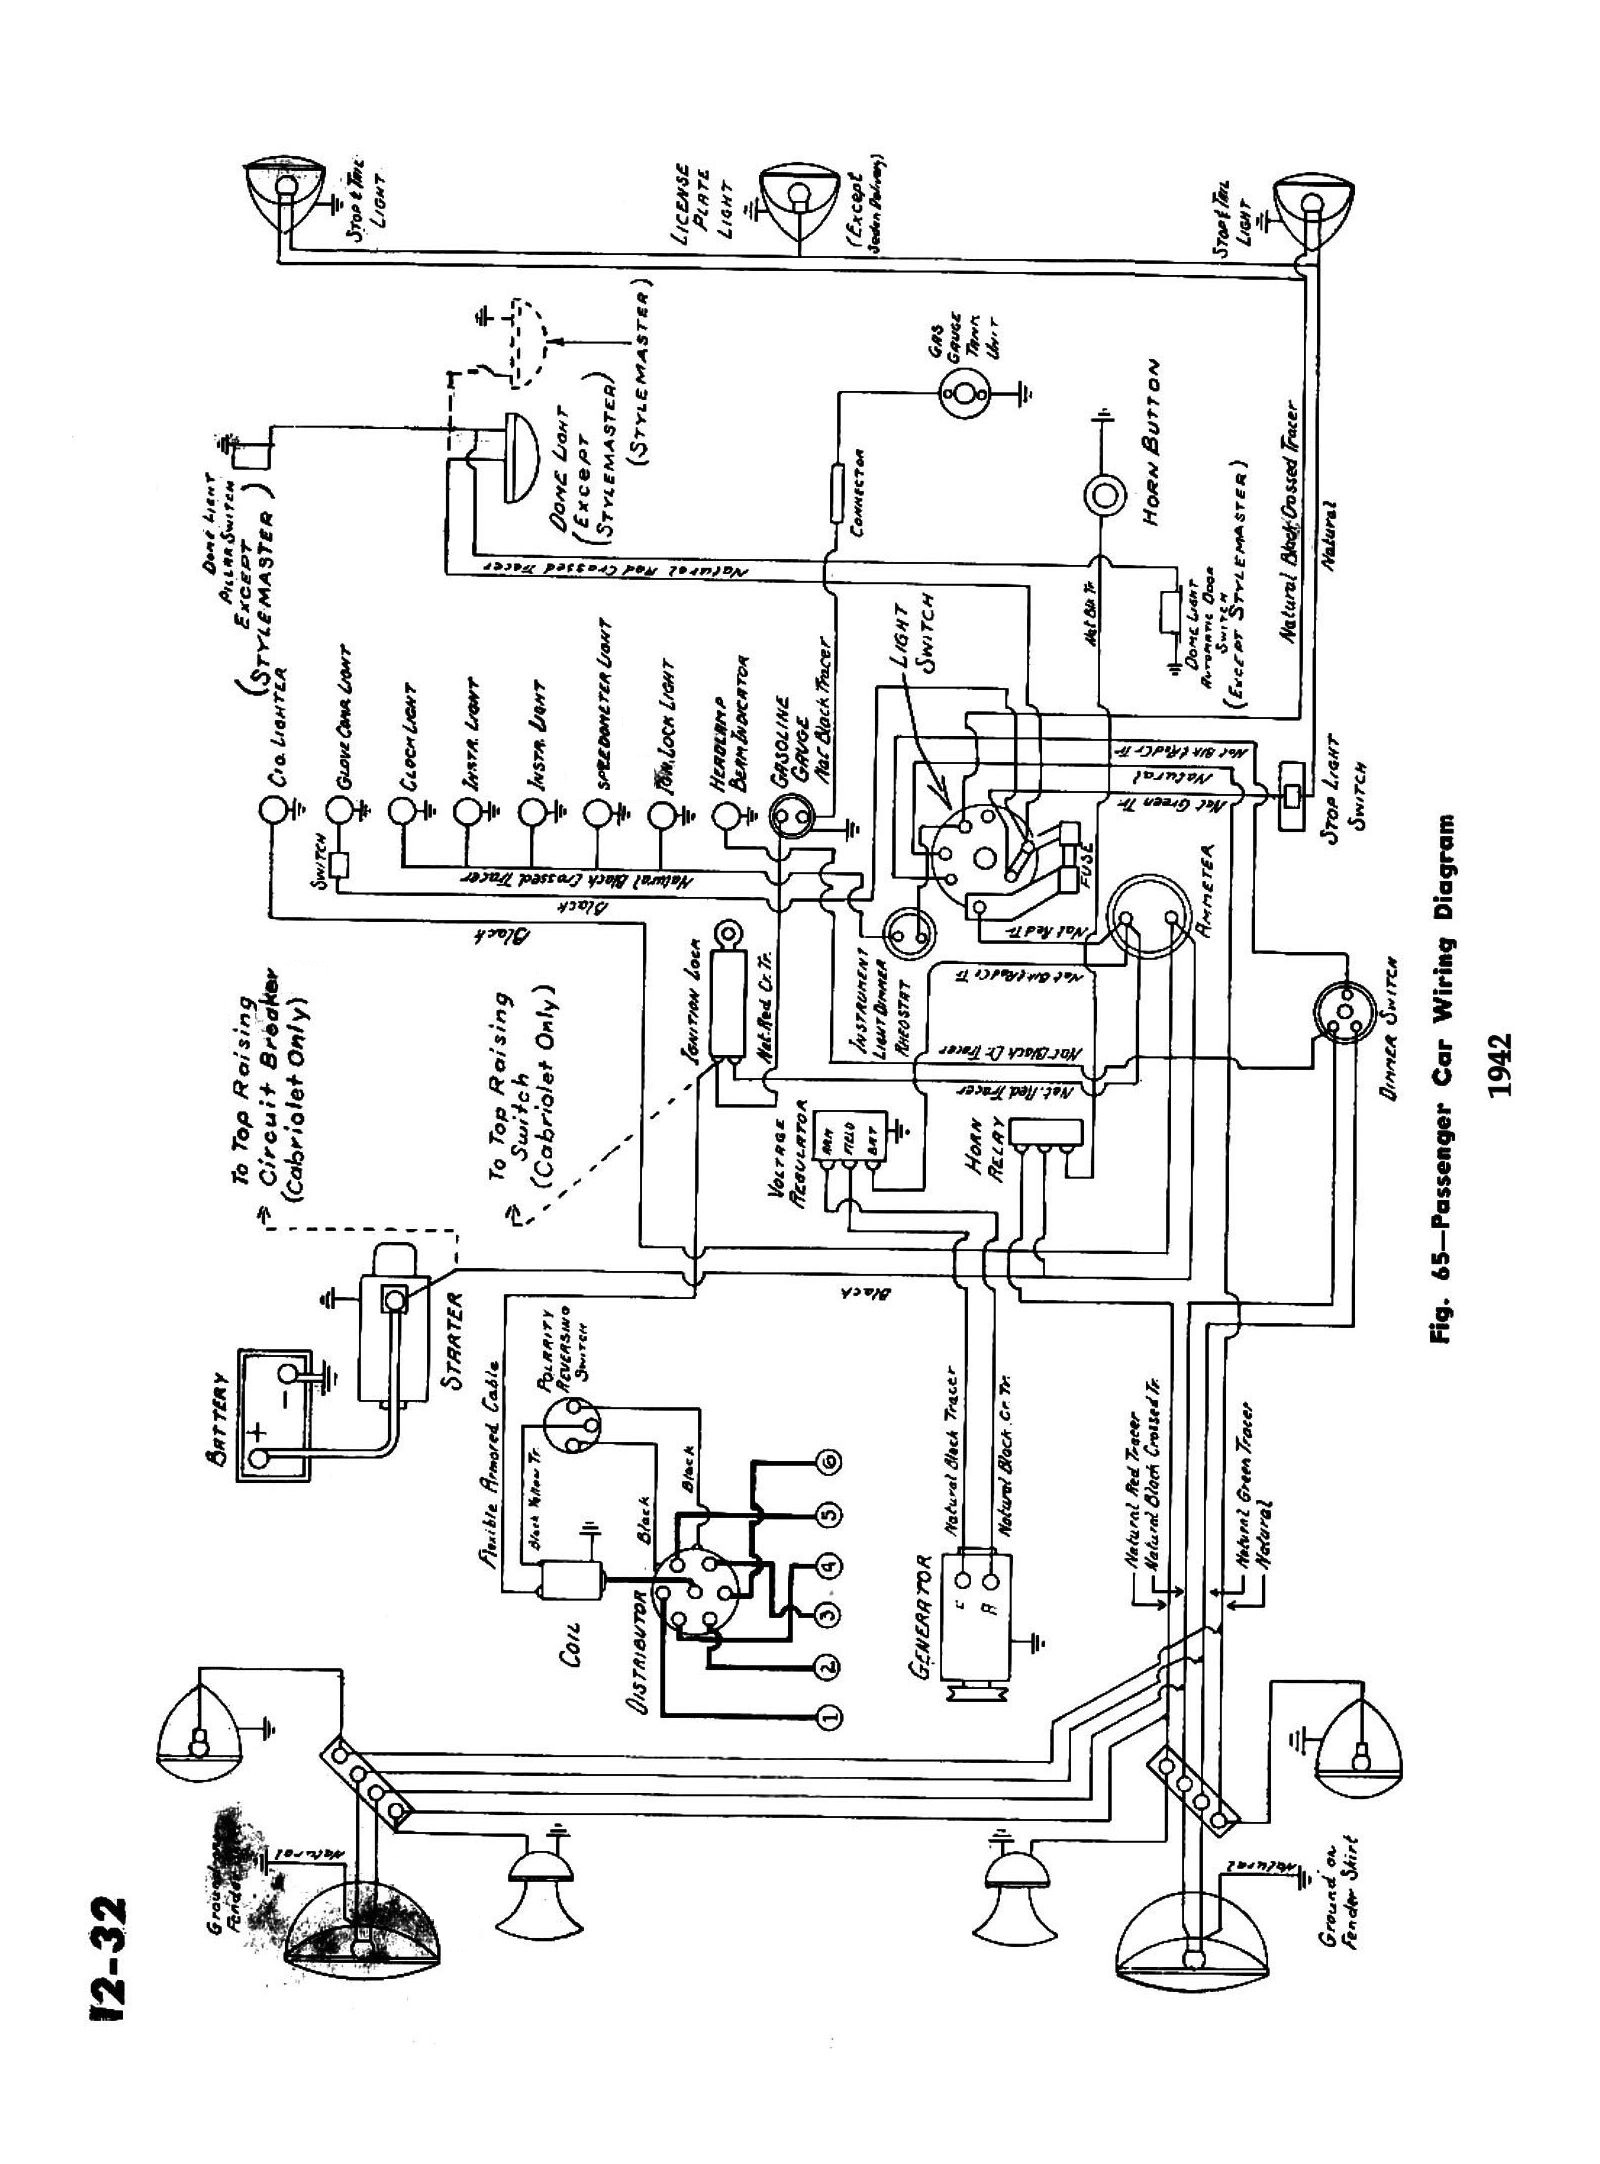 Chevy Wiring Diagrams Chevrolet Truck Schematics 1942 Car Passenger